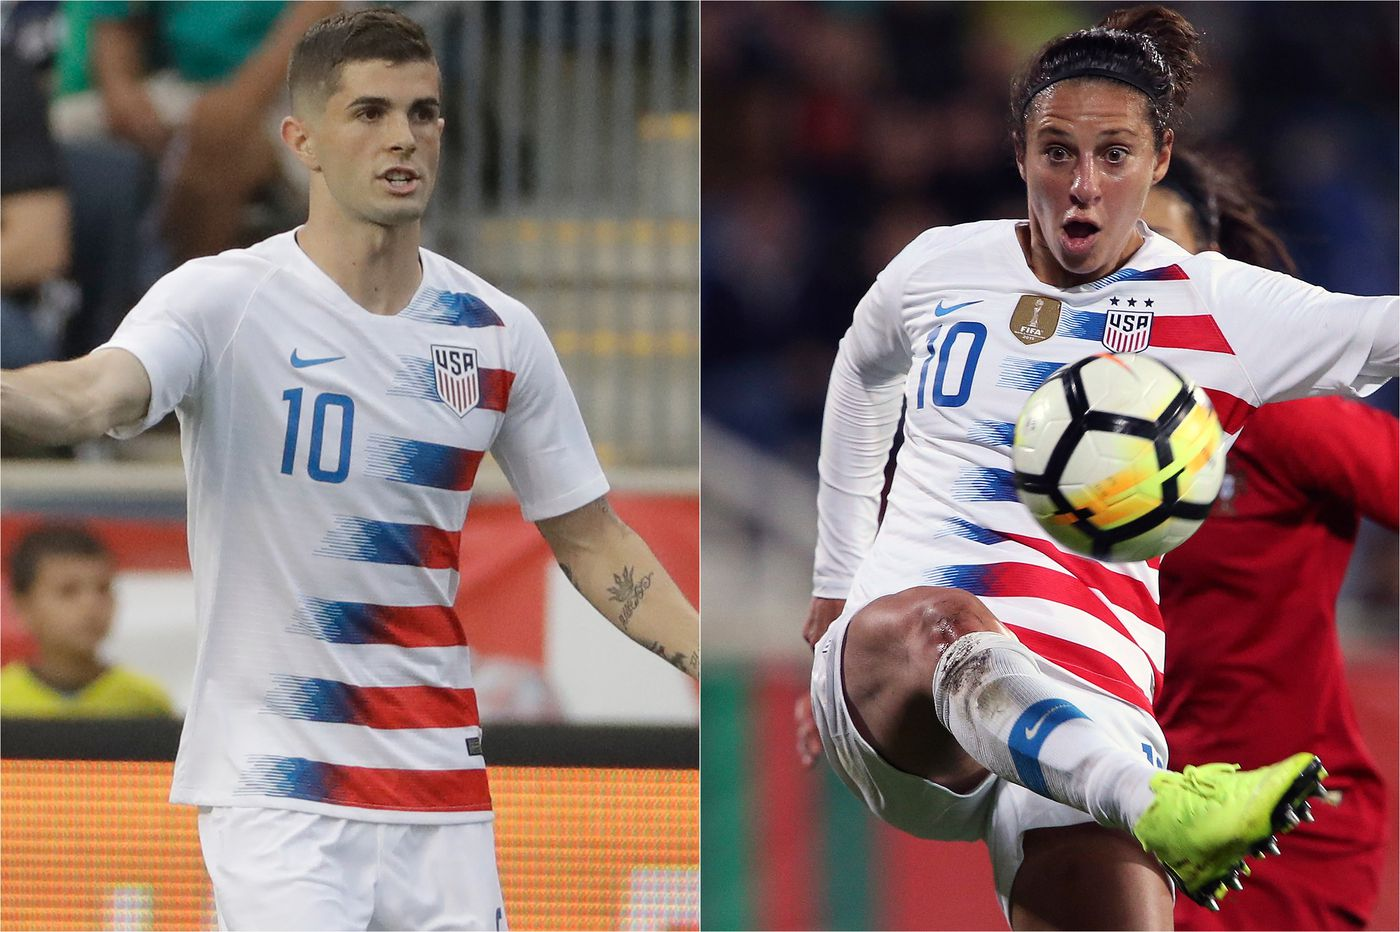 U.S. national teams check-in: Women ready for title defense; men ready for new coach